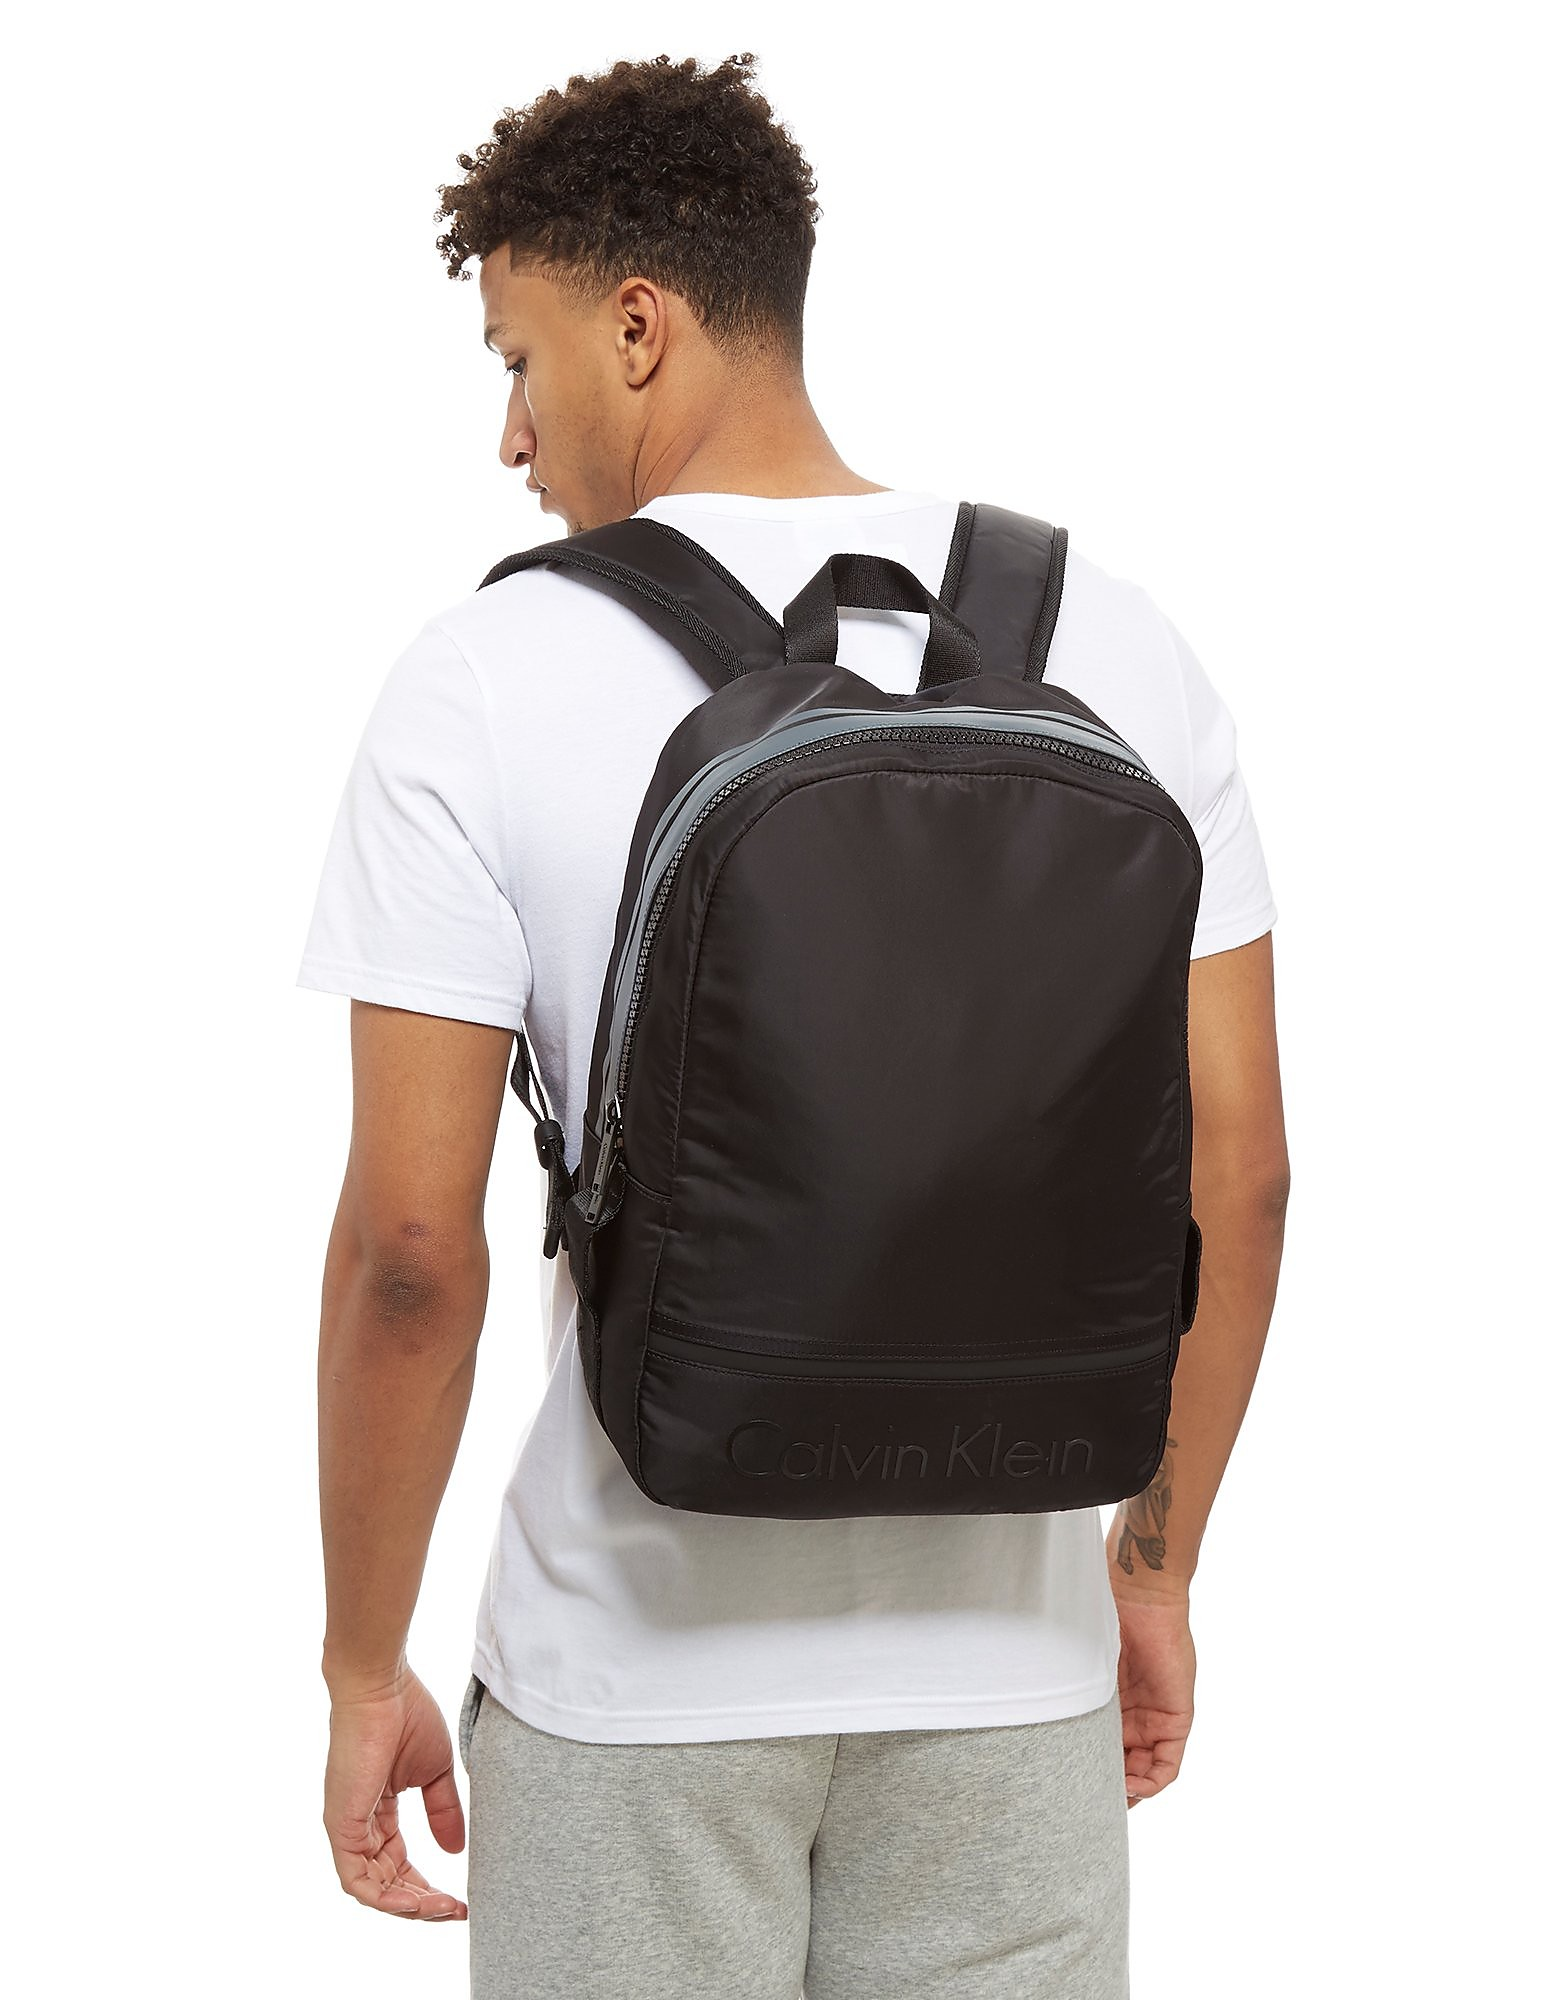 Calvin Klein Matthew Backpack